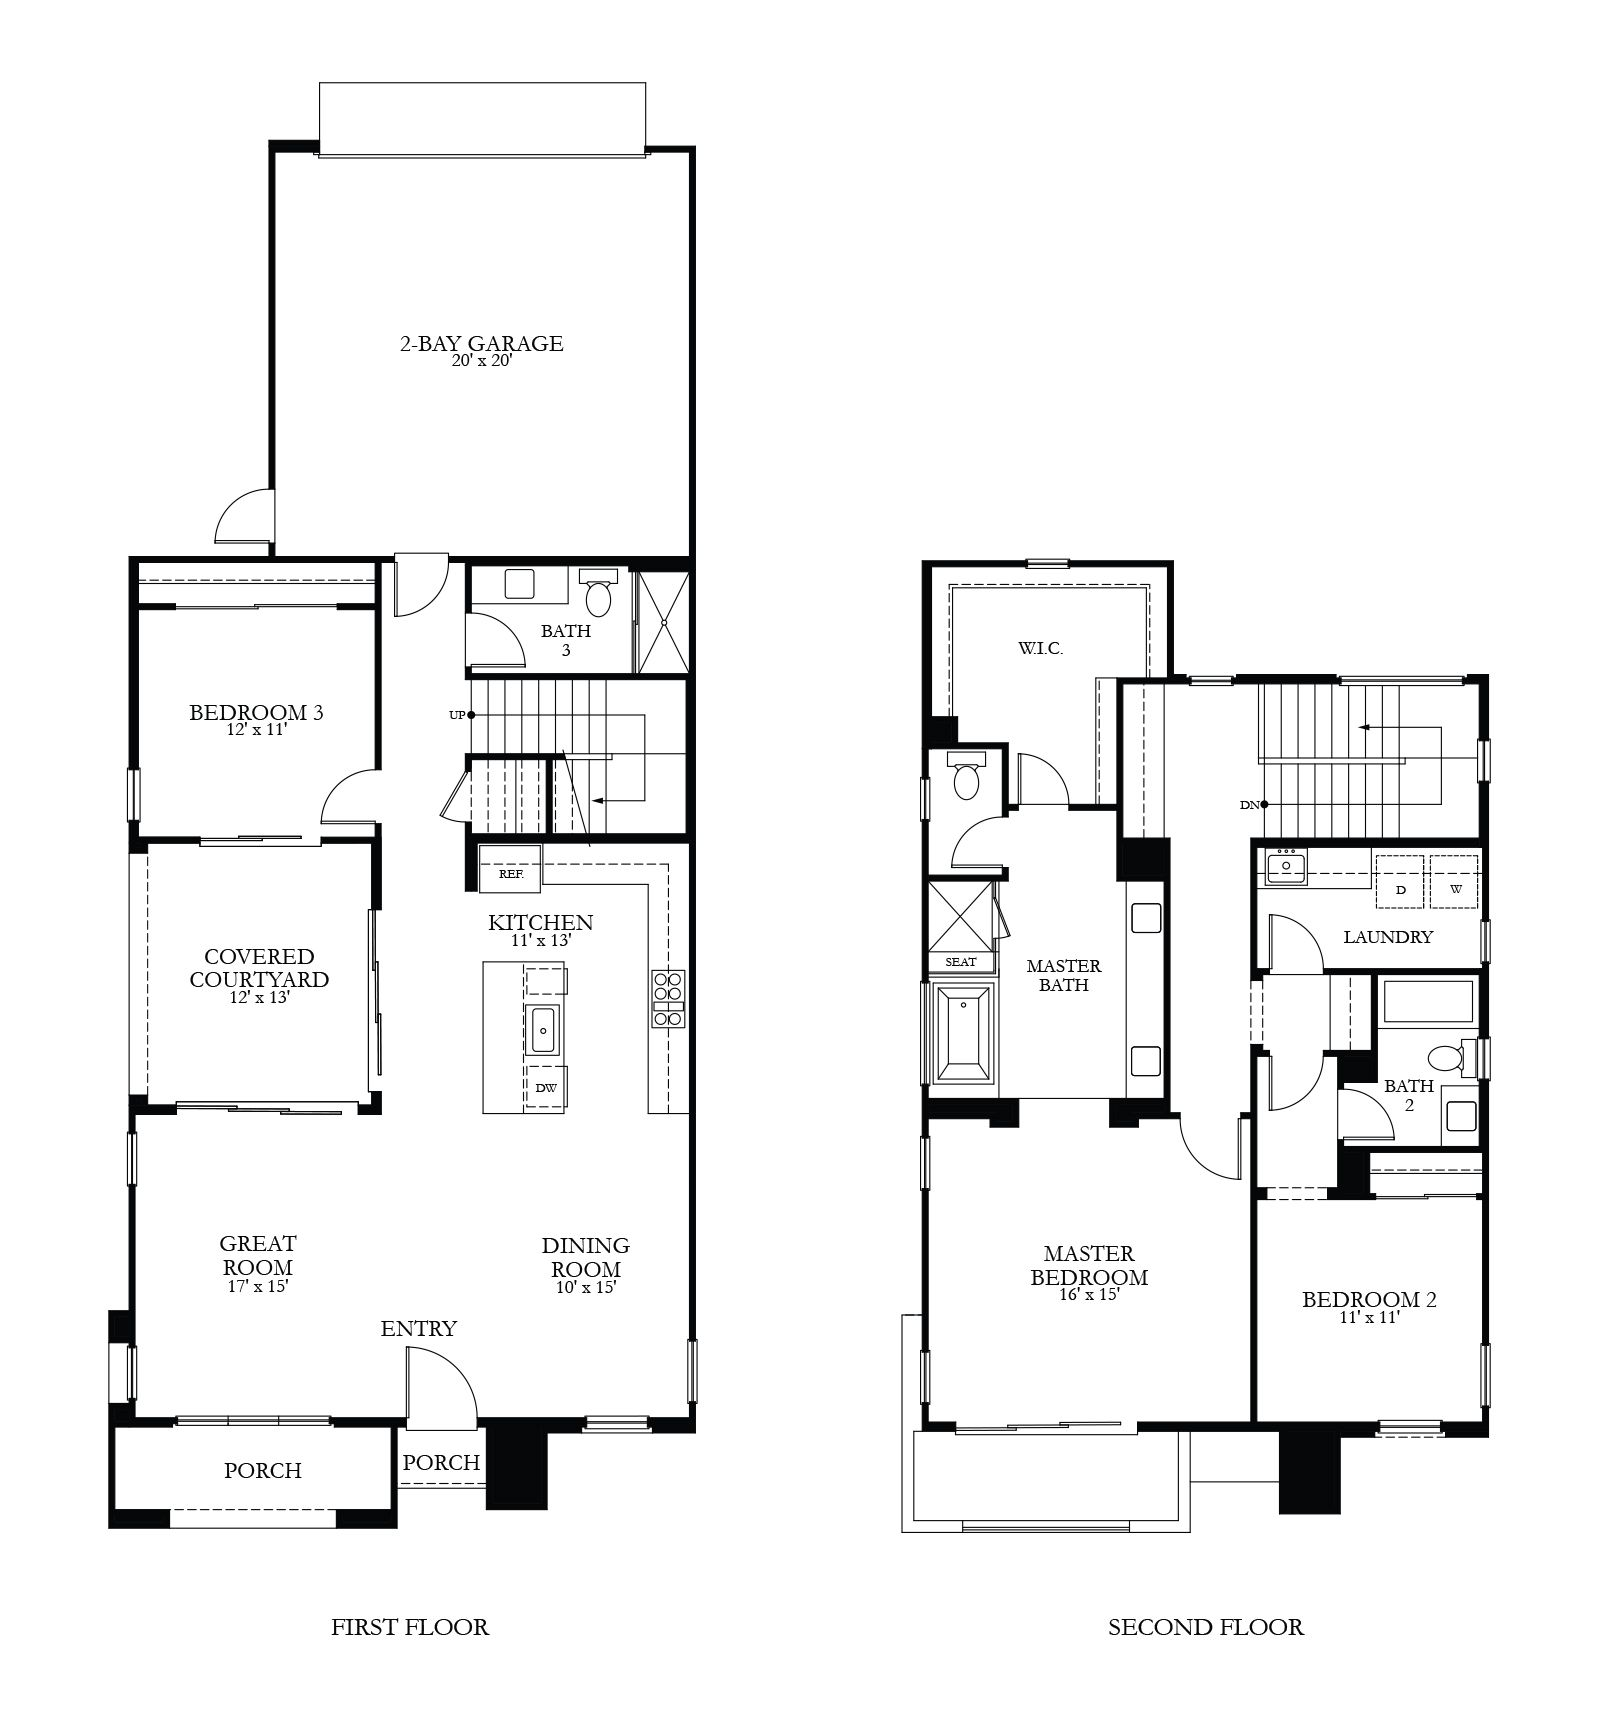 Add second floor to first and create atrium. Adagio ... on narrow lot duplex plans, zero lot landscaping, small lot house plans, zero house plans new england, narrow lot house plans, zero entry house plans, zero lot line duplex plans, louisiana acadian style floor plans, corner lot house plans, sloping lot house plans, view lot house plans, zero energy homes, louisiana french home design plans,